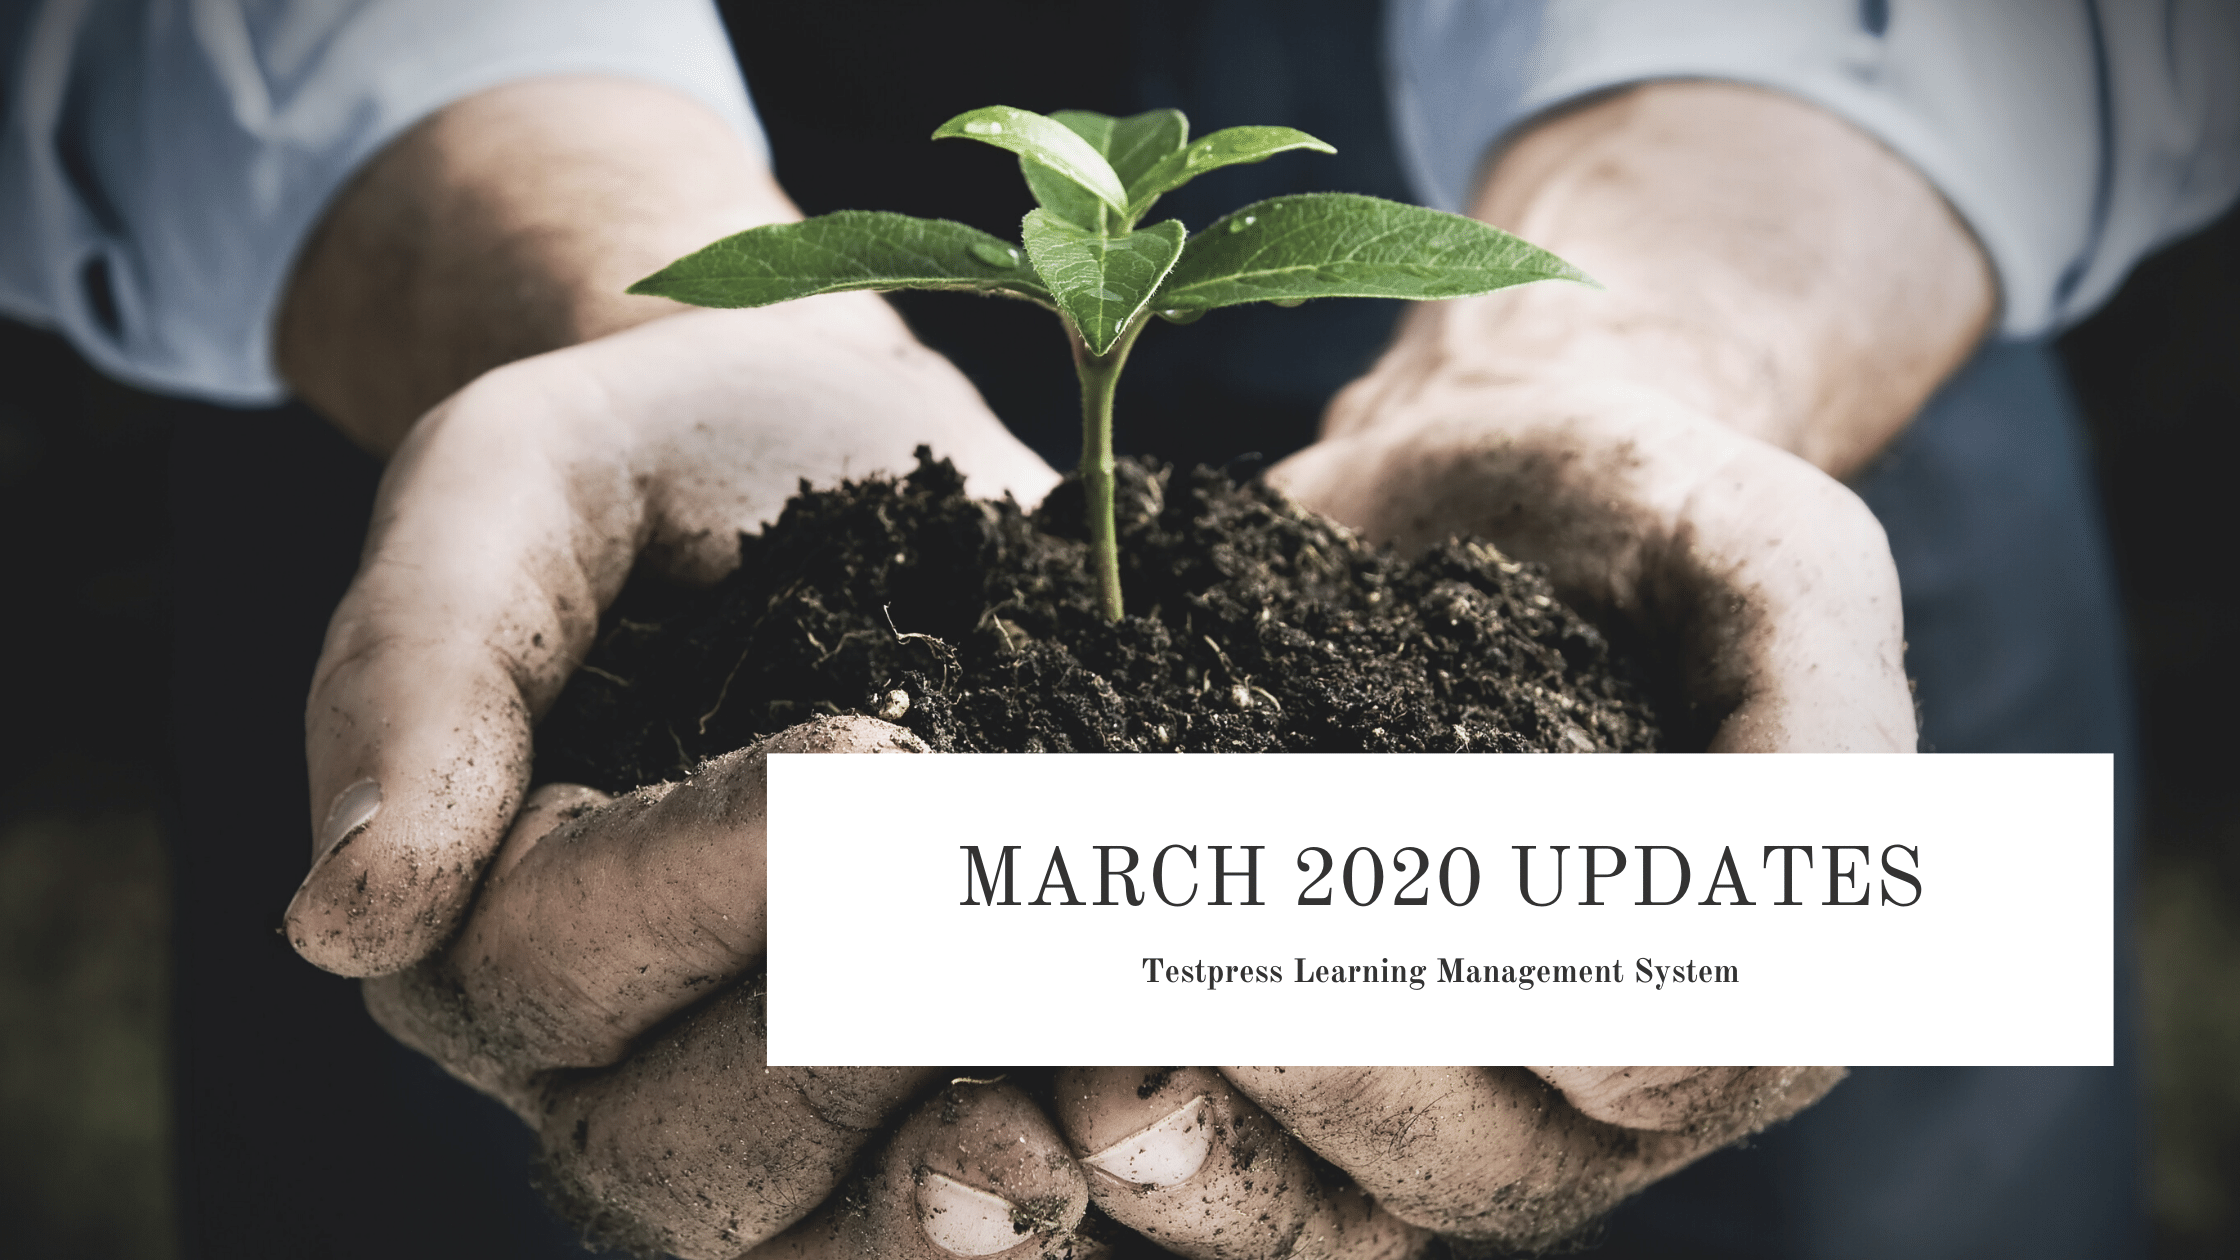 What's new in Testpress Learning Management System - March 2021